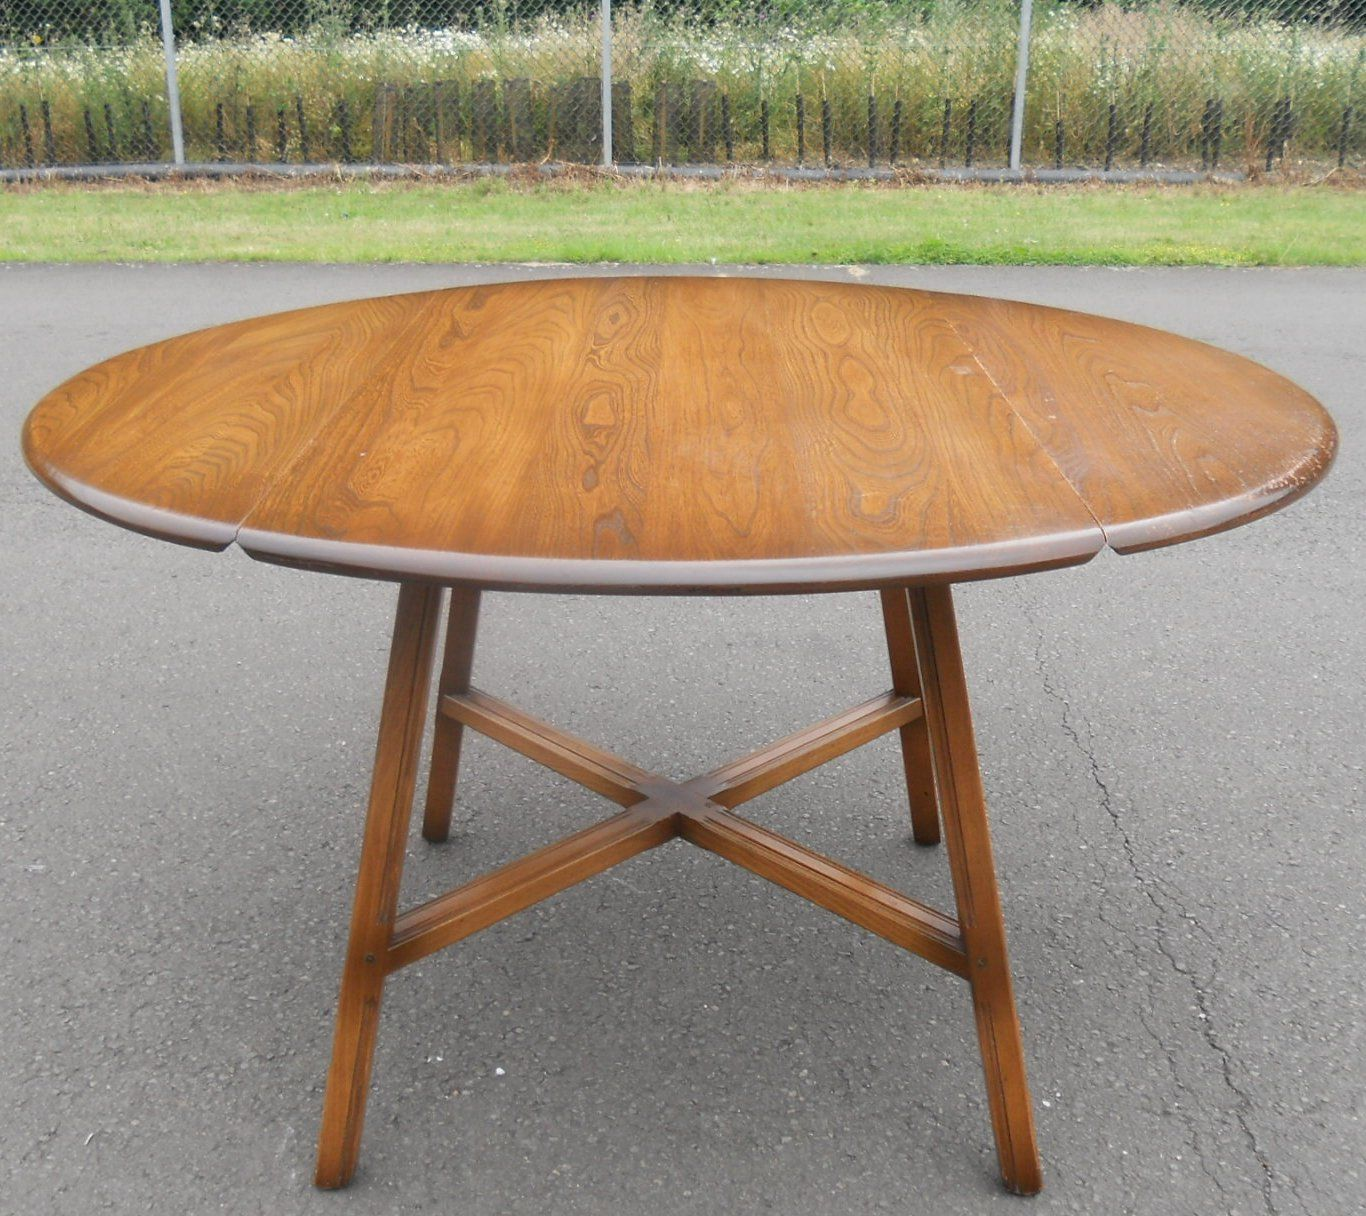 Sold oval dropleaf elm dining table by ercol watchthetrailerfo